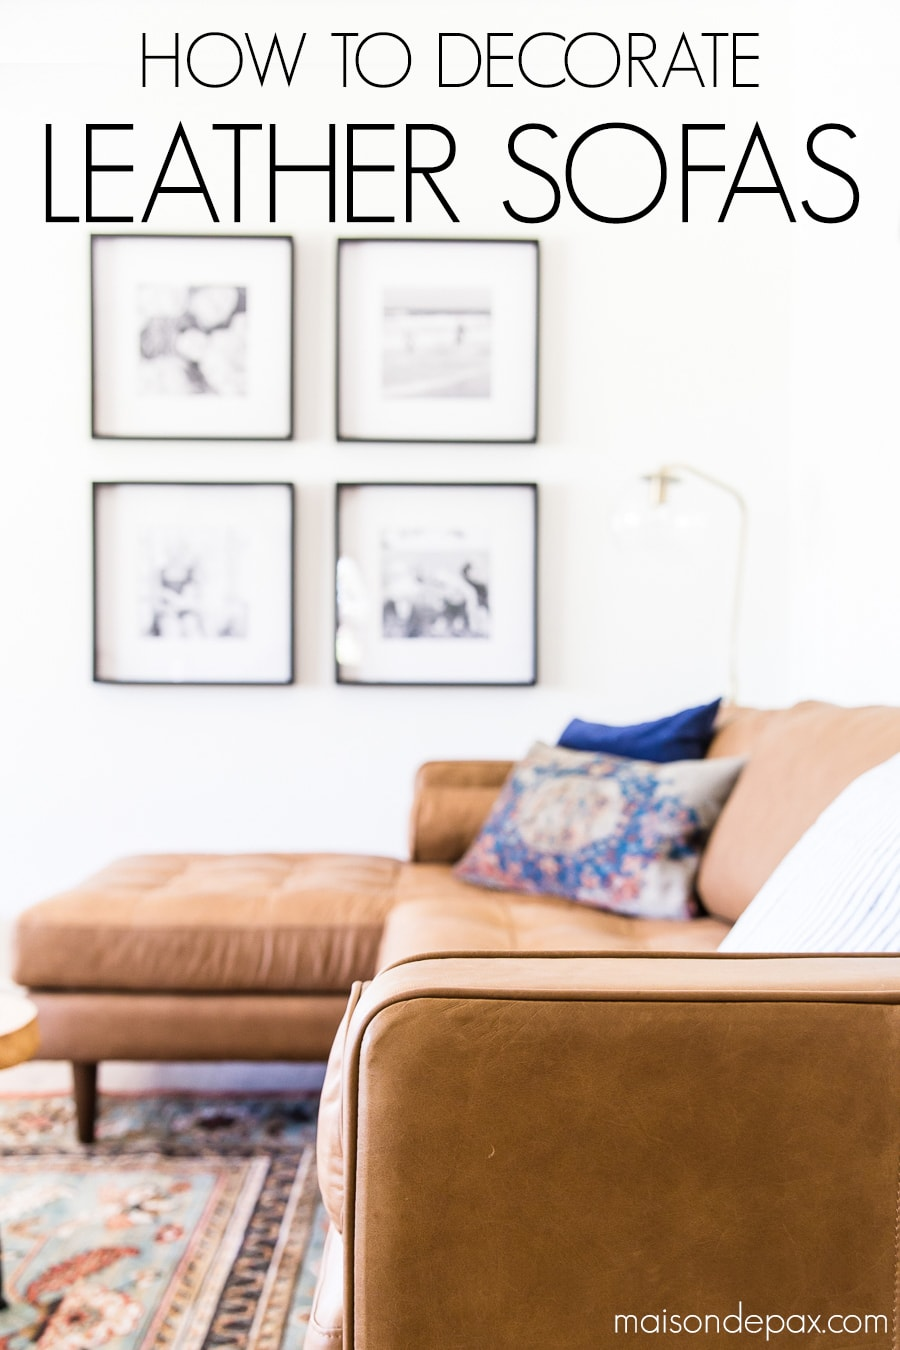 tan leather couch sectional with overlay: how to decorate leather sofas | Maison de Pax